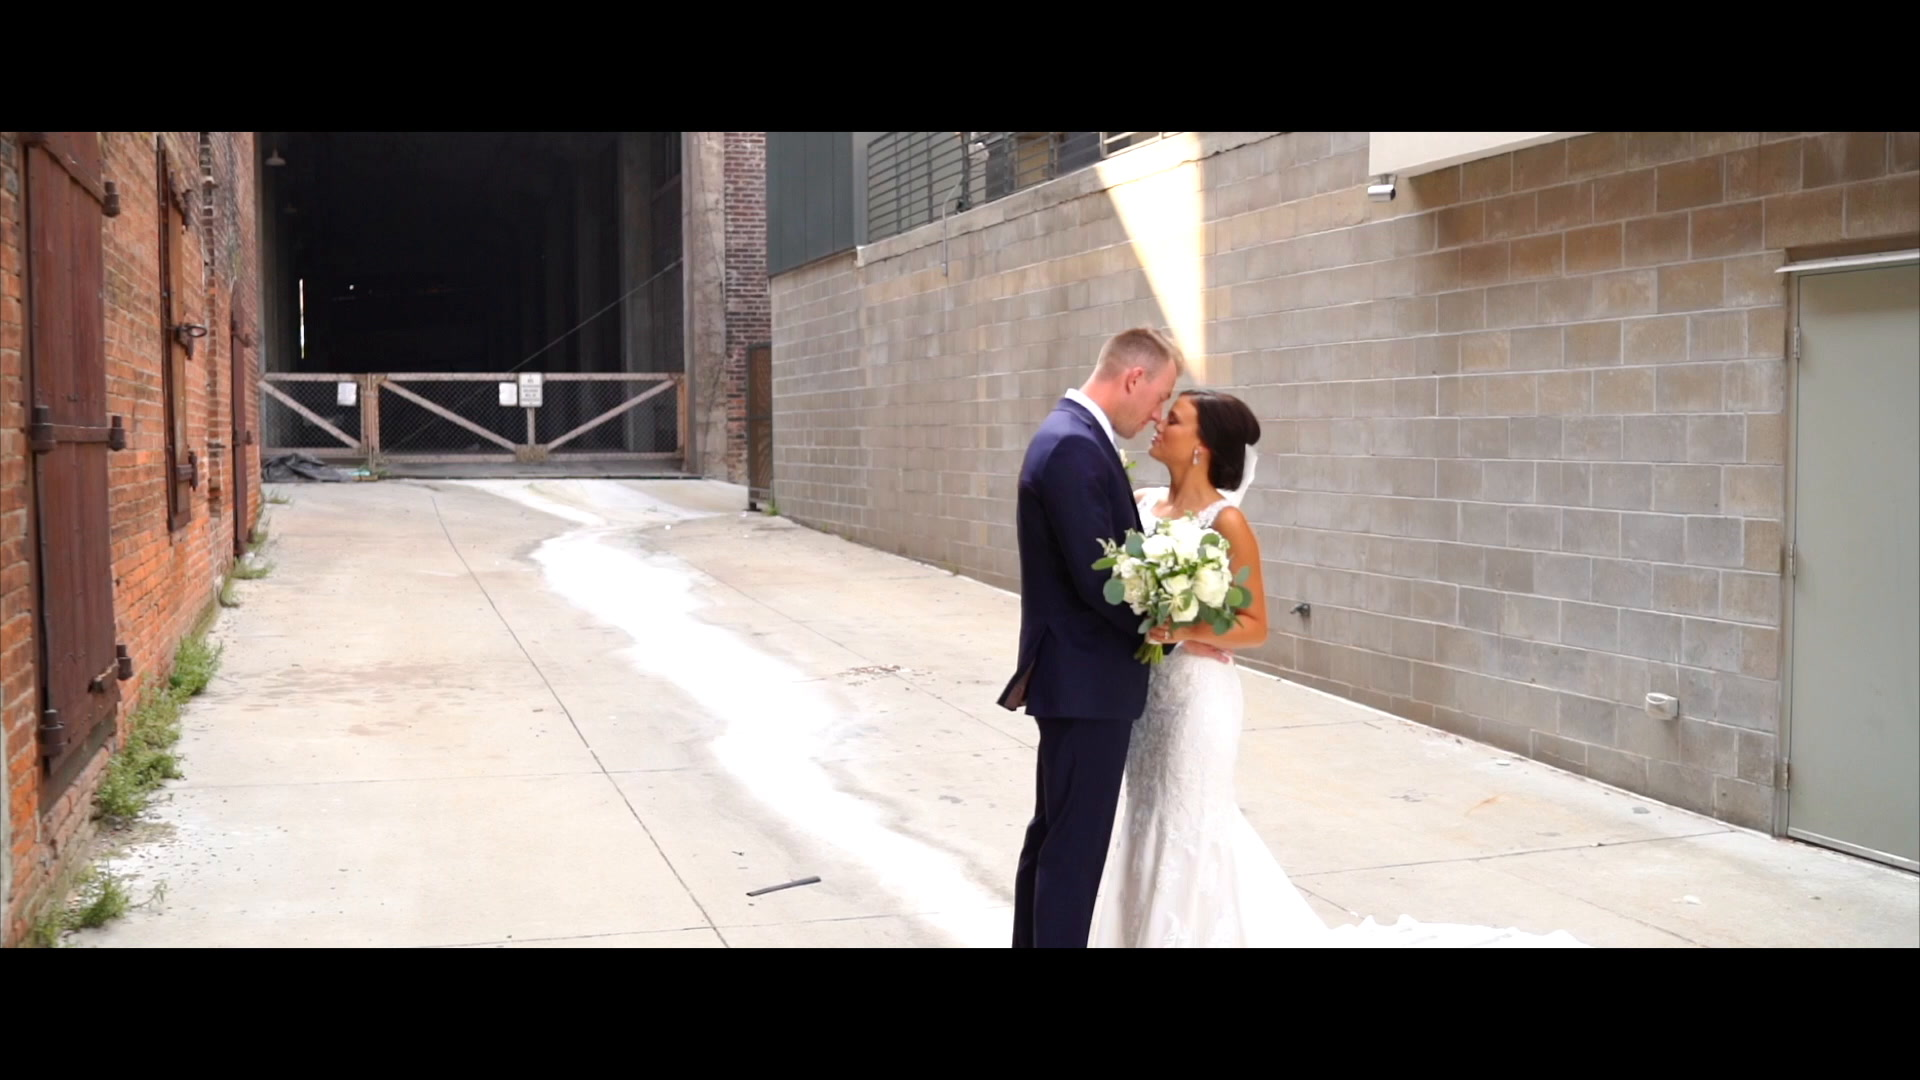 Jeffrey + Kylie | Omaha, Nebraska | Omaha's Henry Doorly Zoo & Aquarium